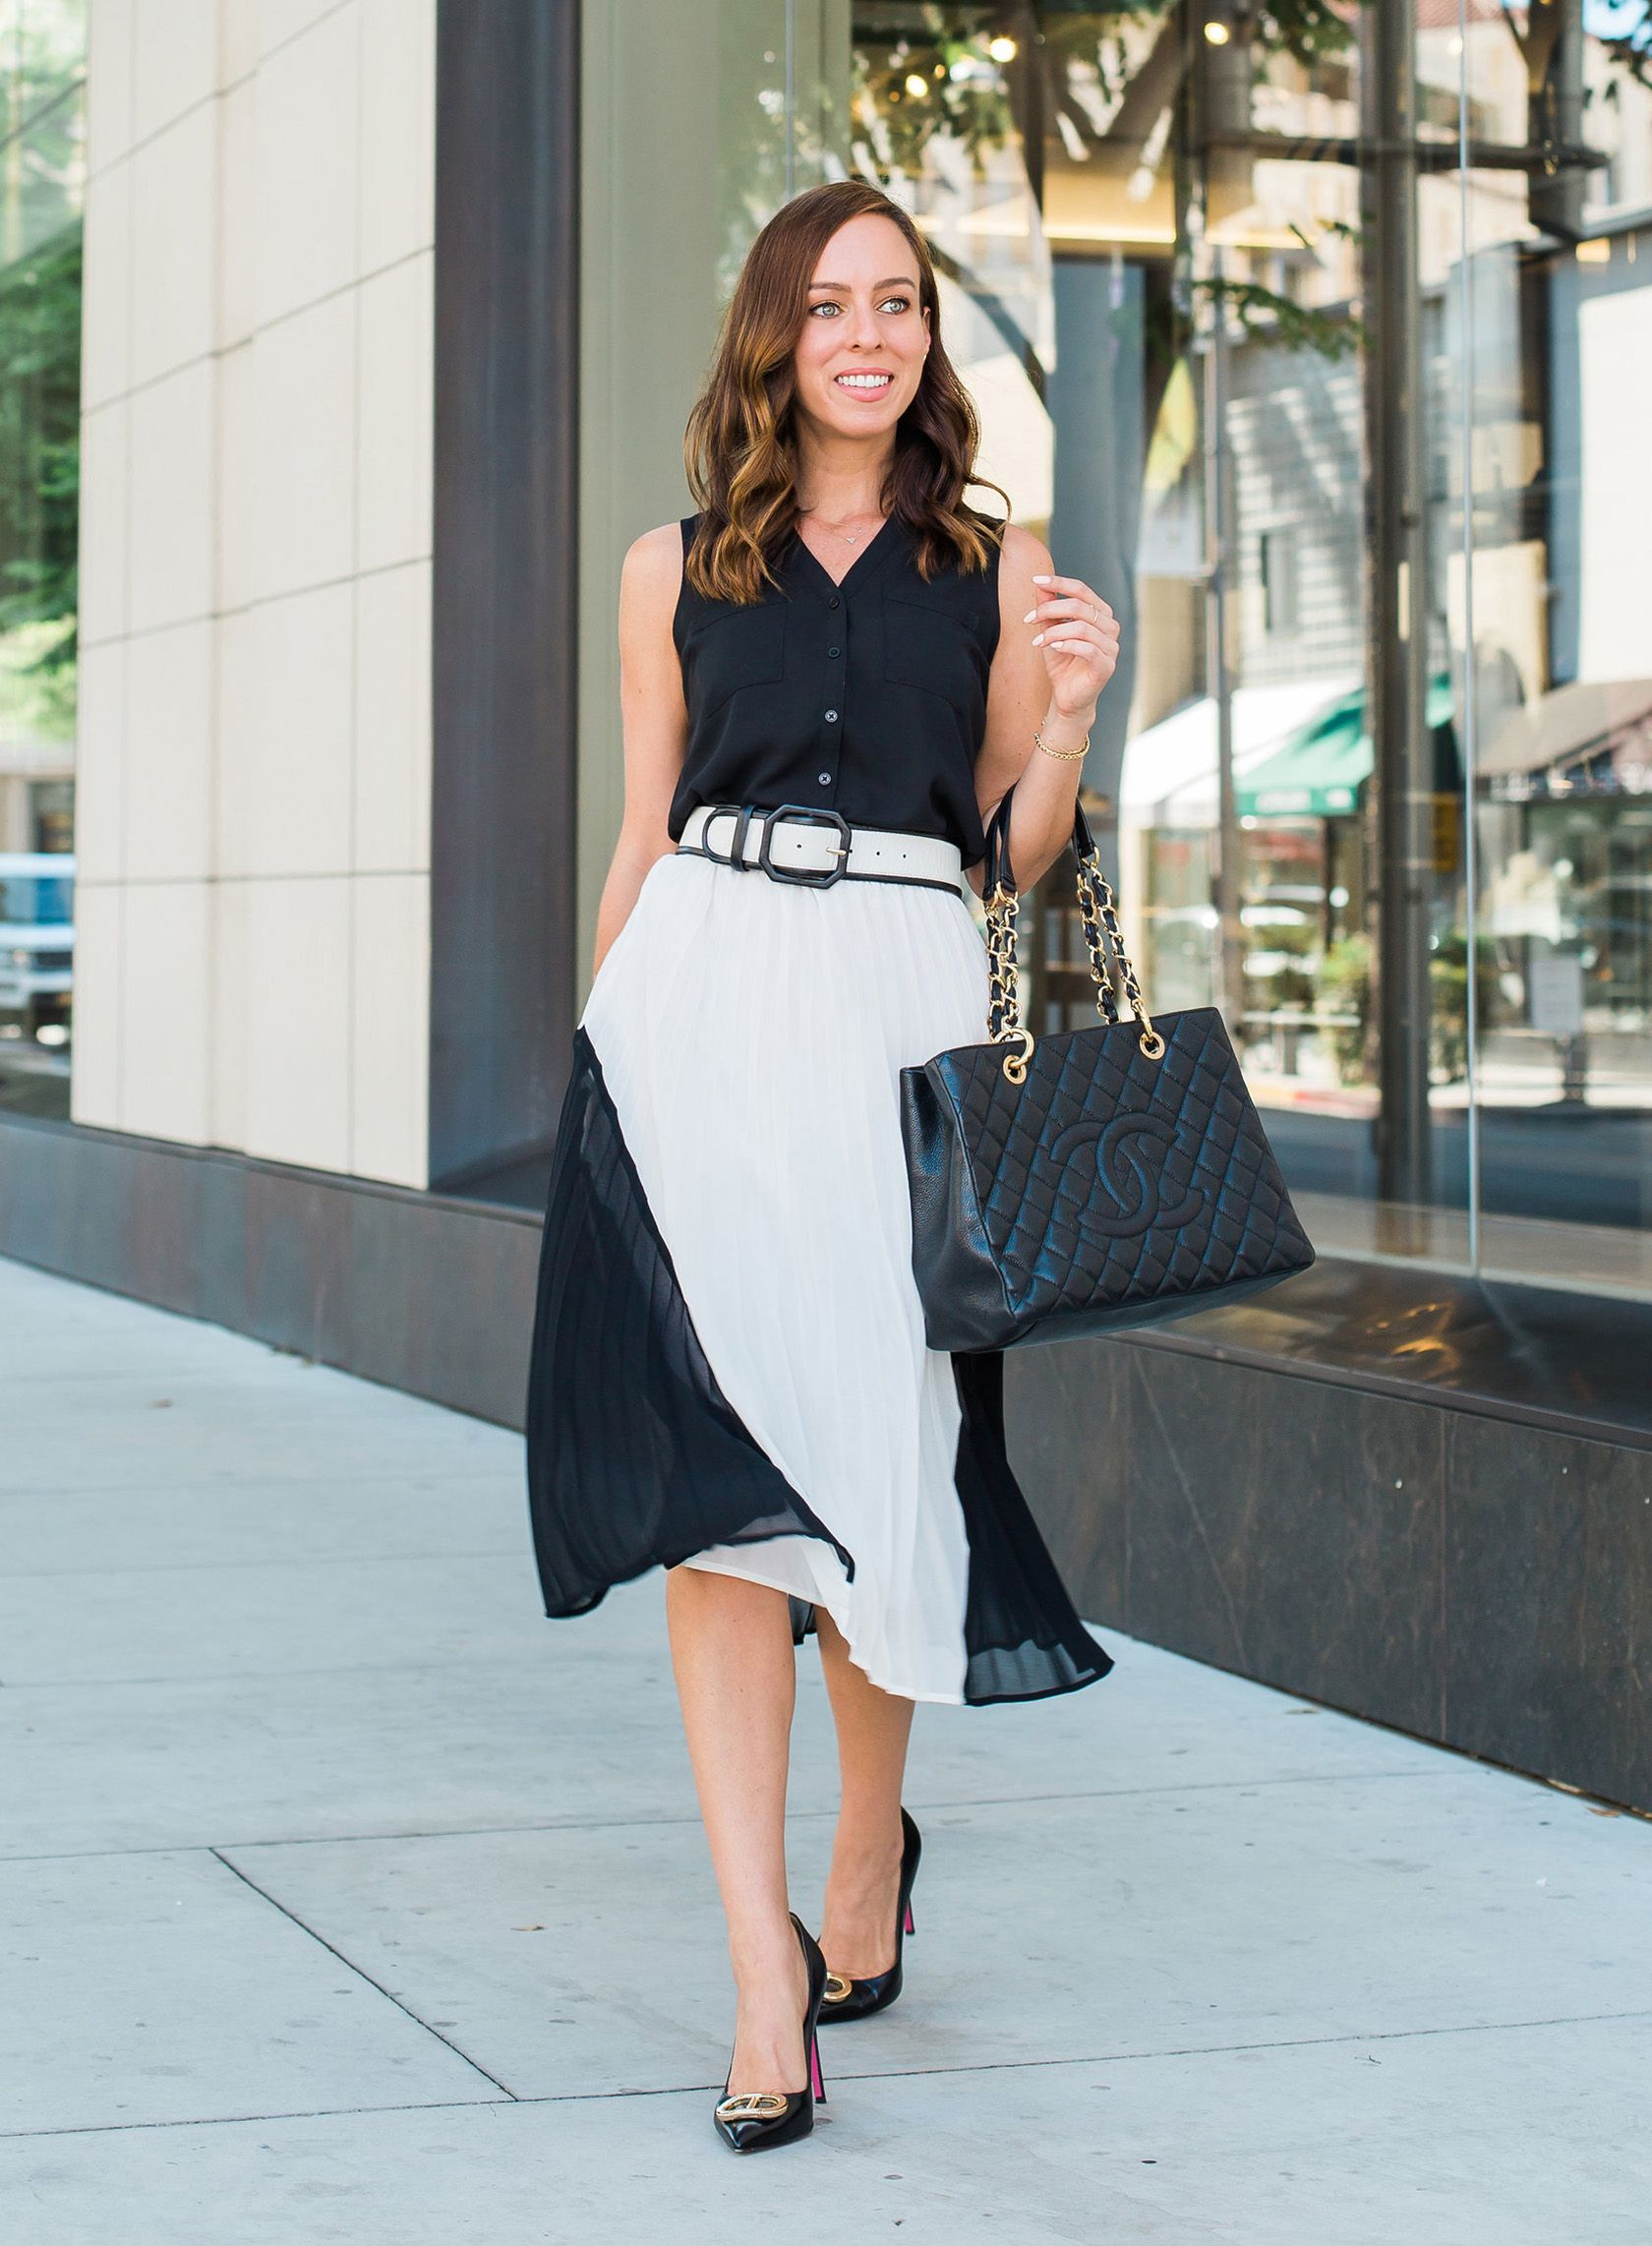 81634289aee7 Sydne Style shows easy office outfit ideas in pleated skirt and black pumps  #blackandwhite #skirts #chanel #chanelbag #meghanmarkle